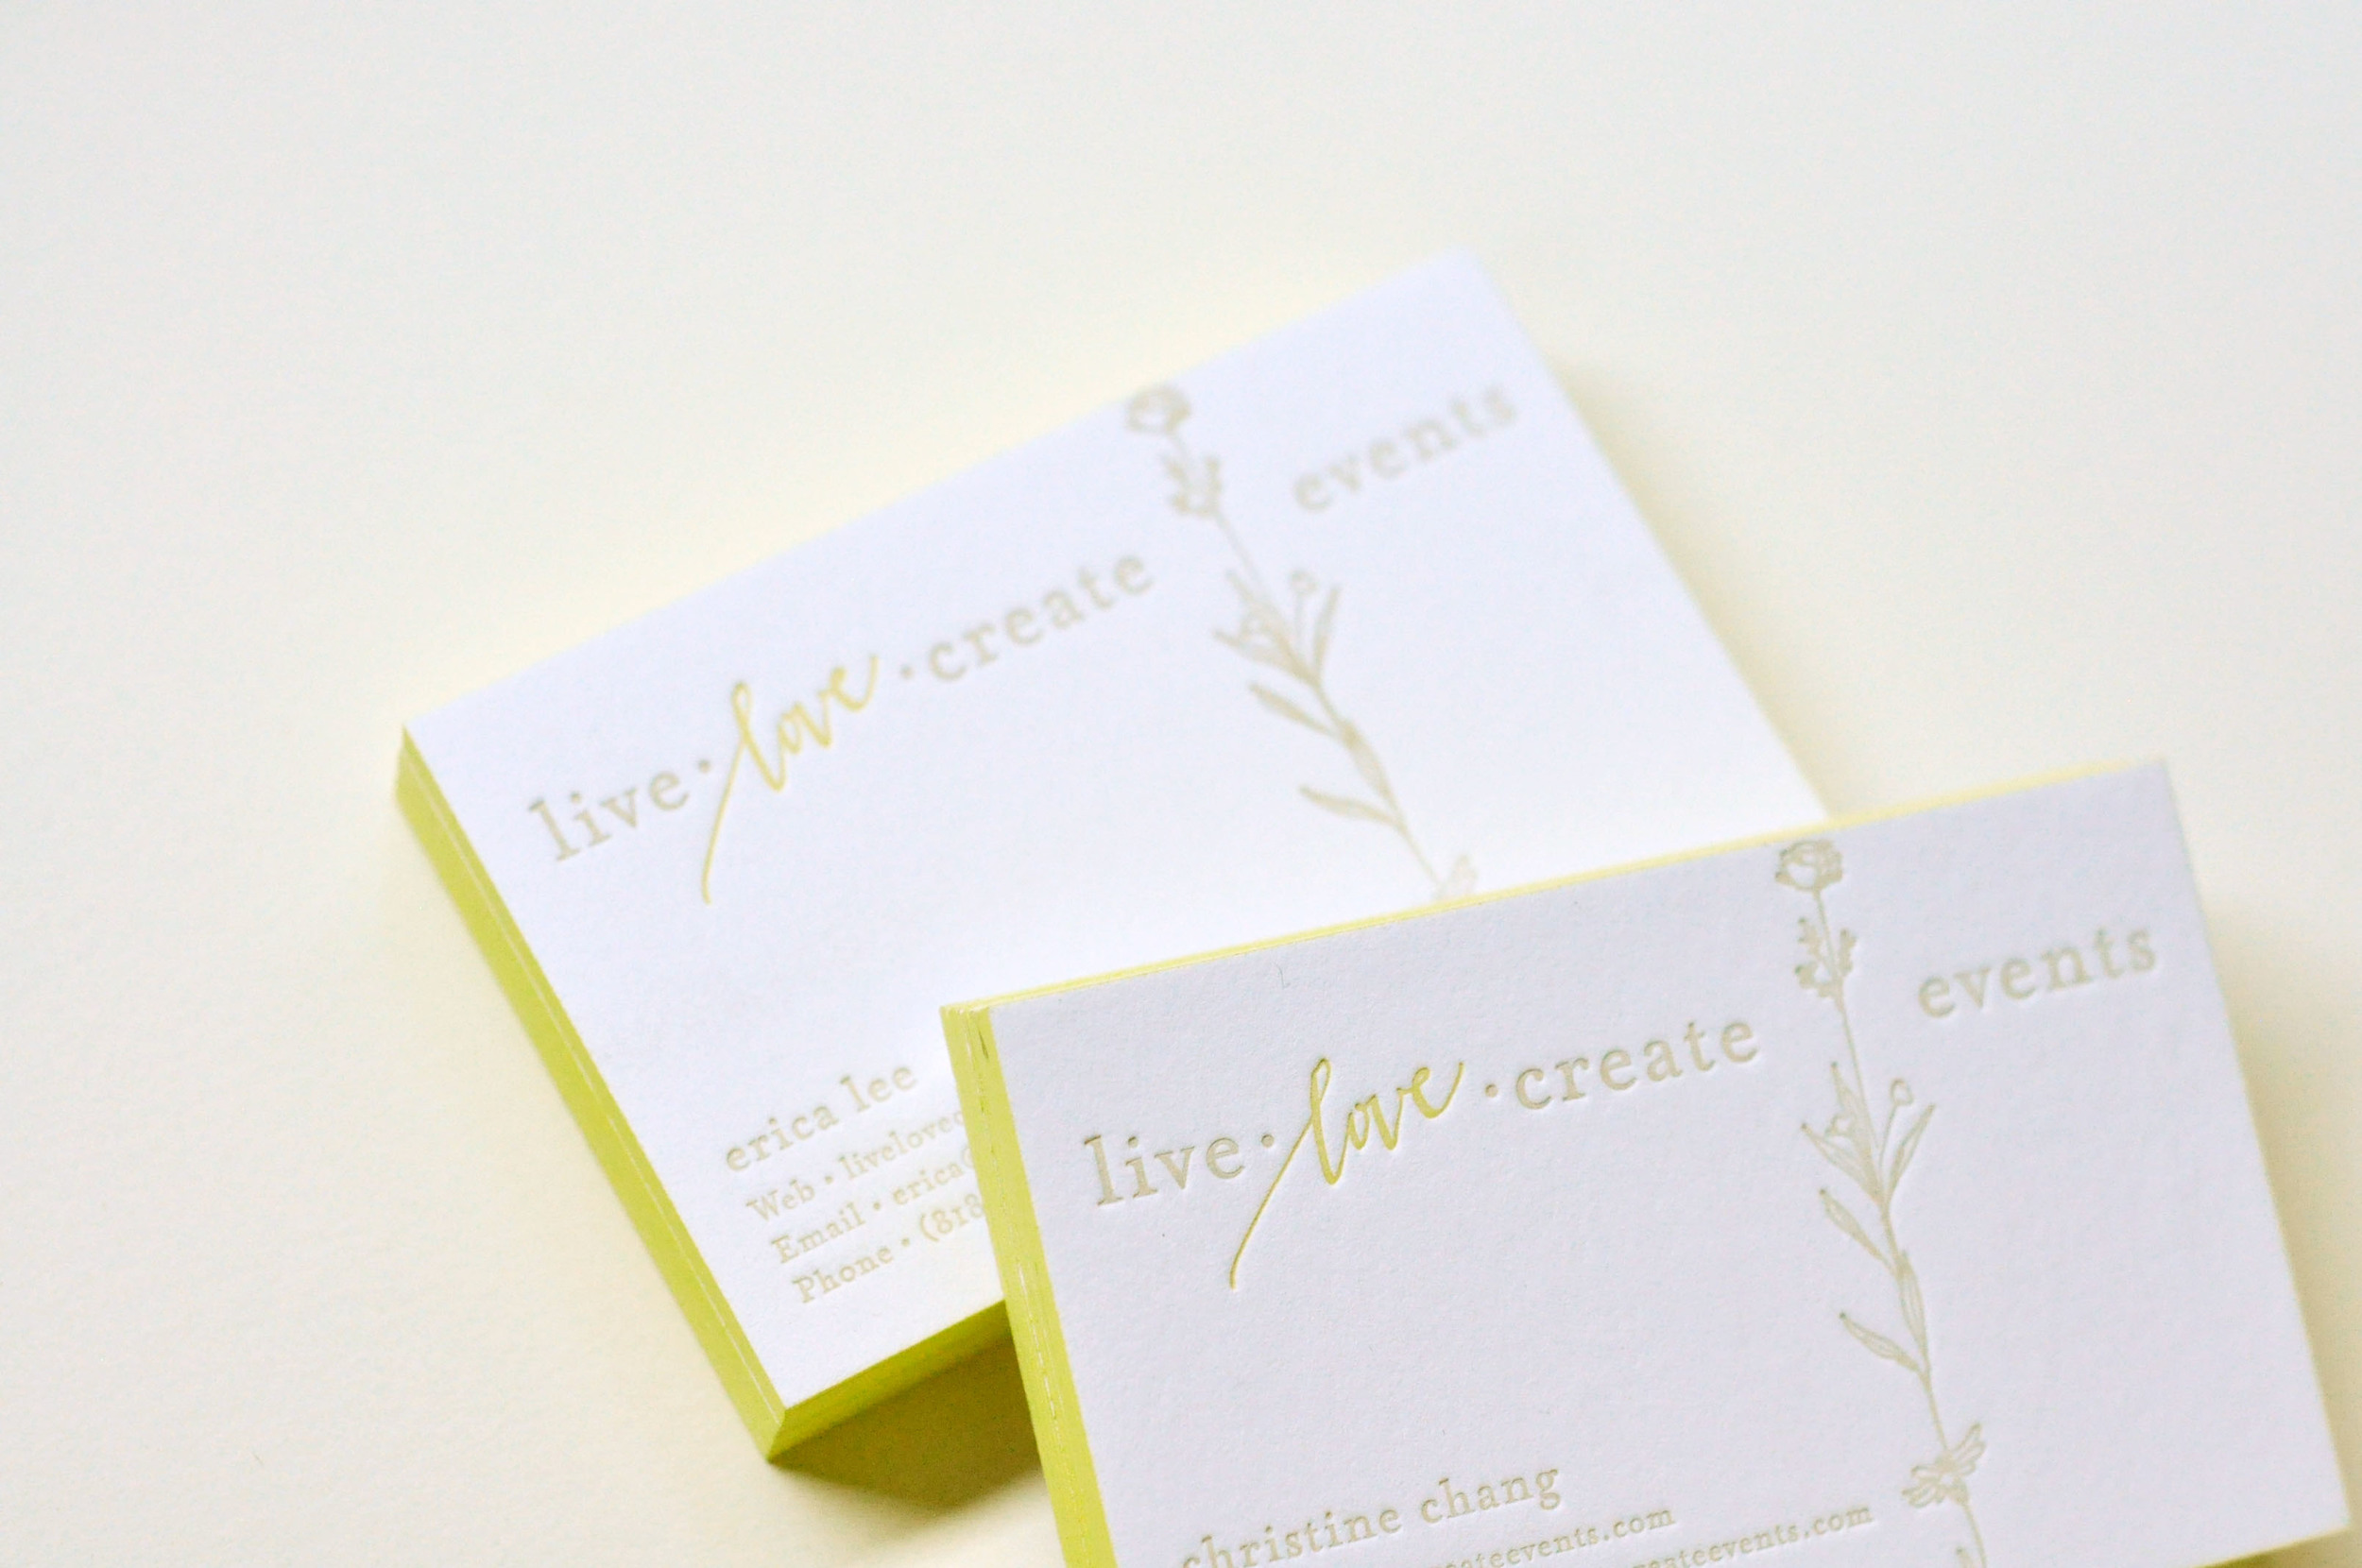 Business cards for Live.Love.Create / Paper & Type